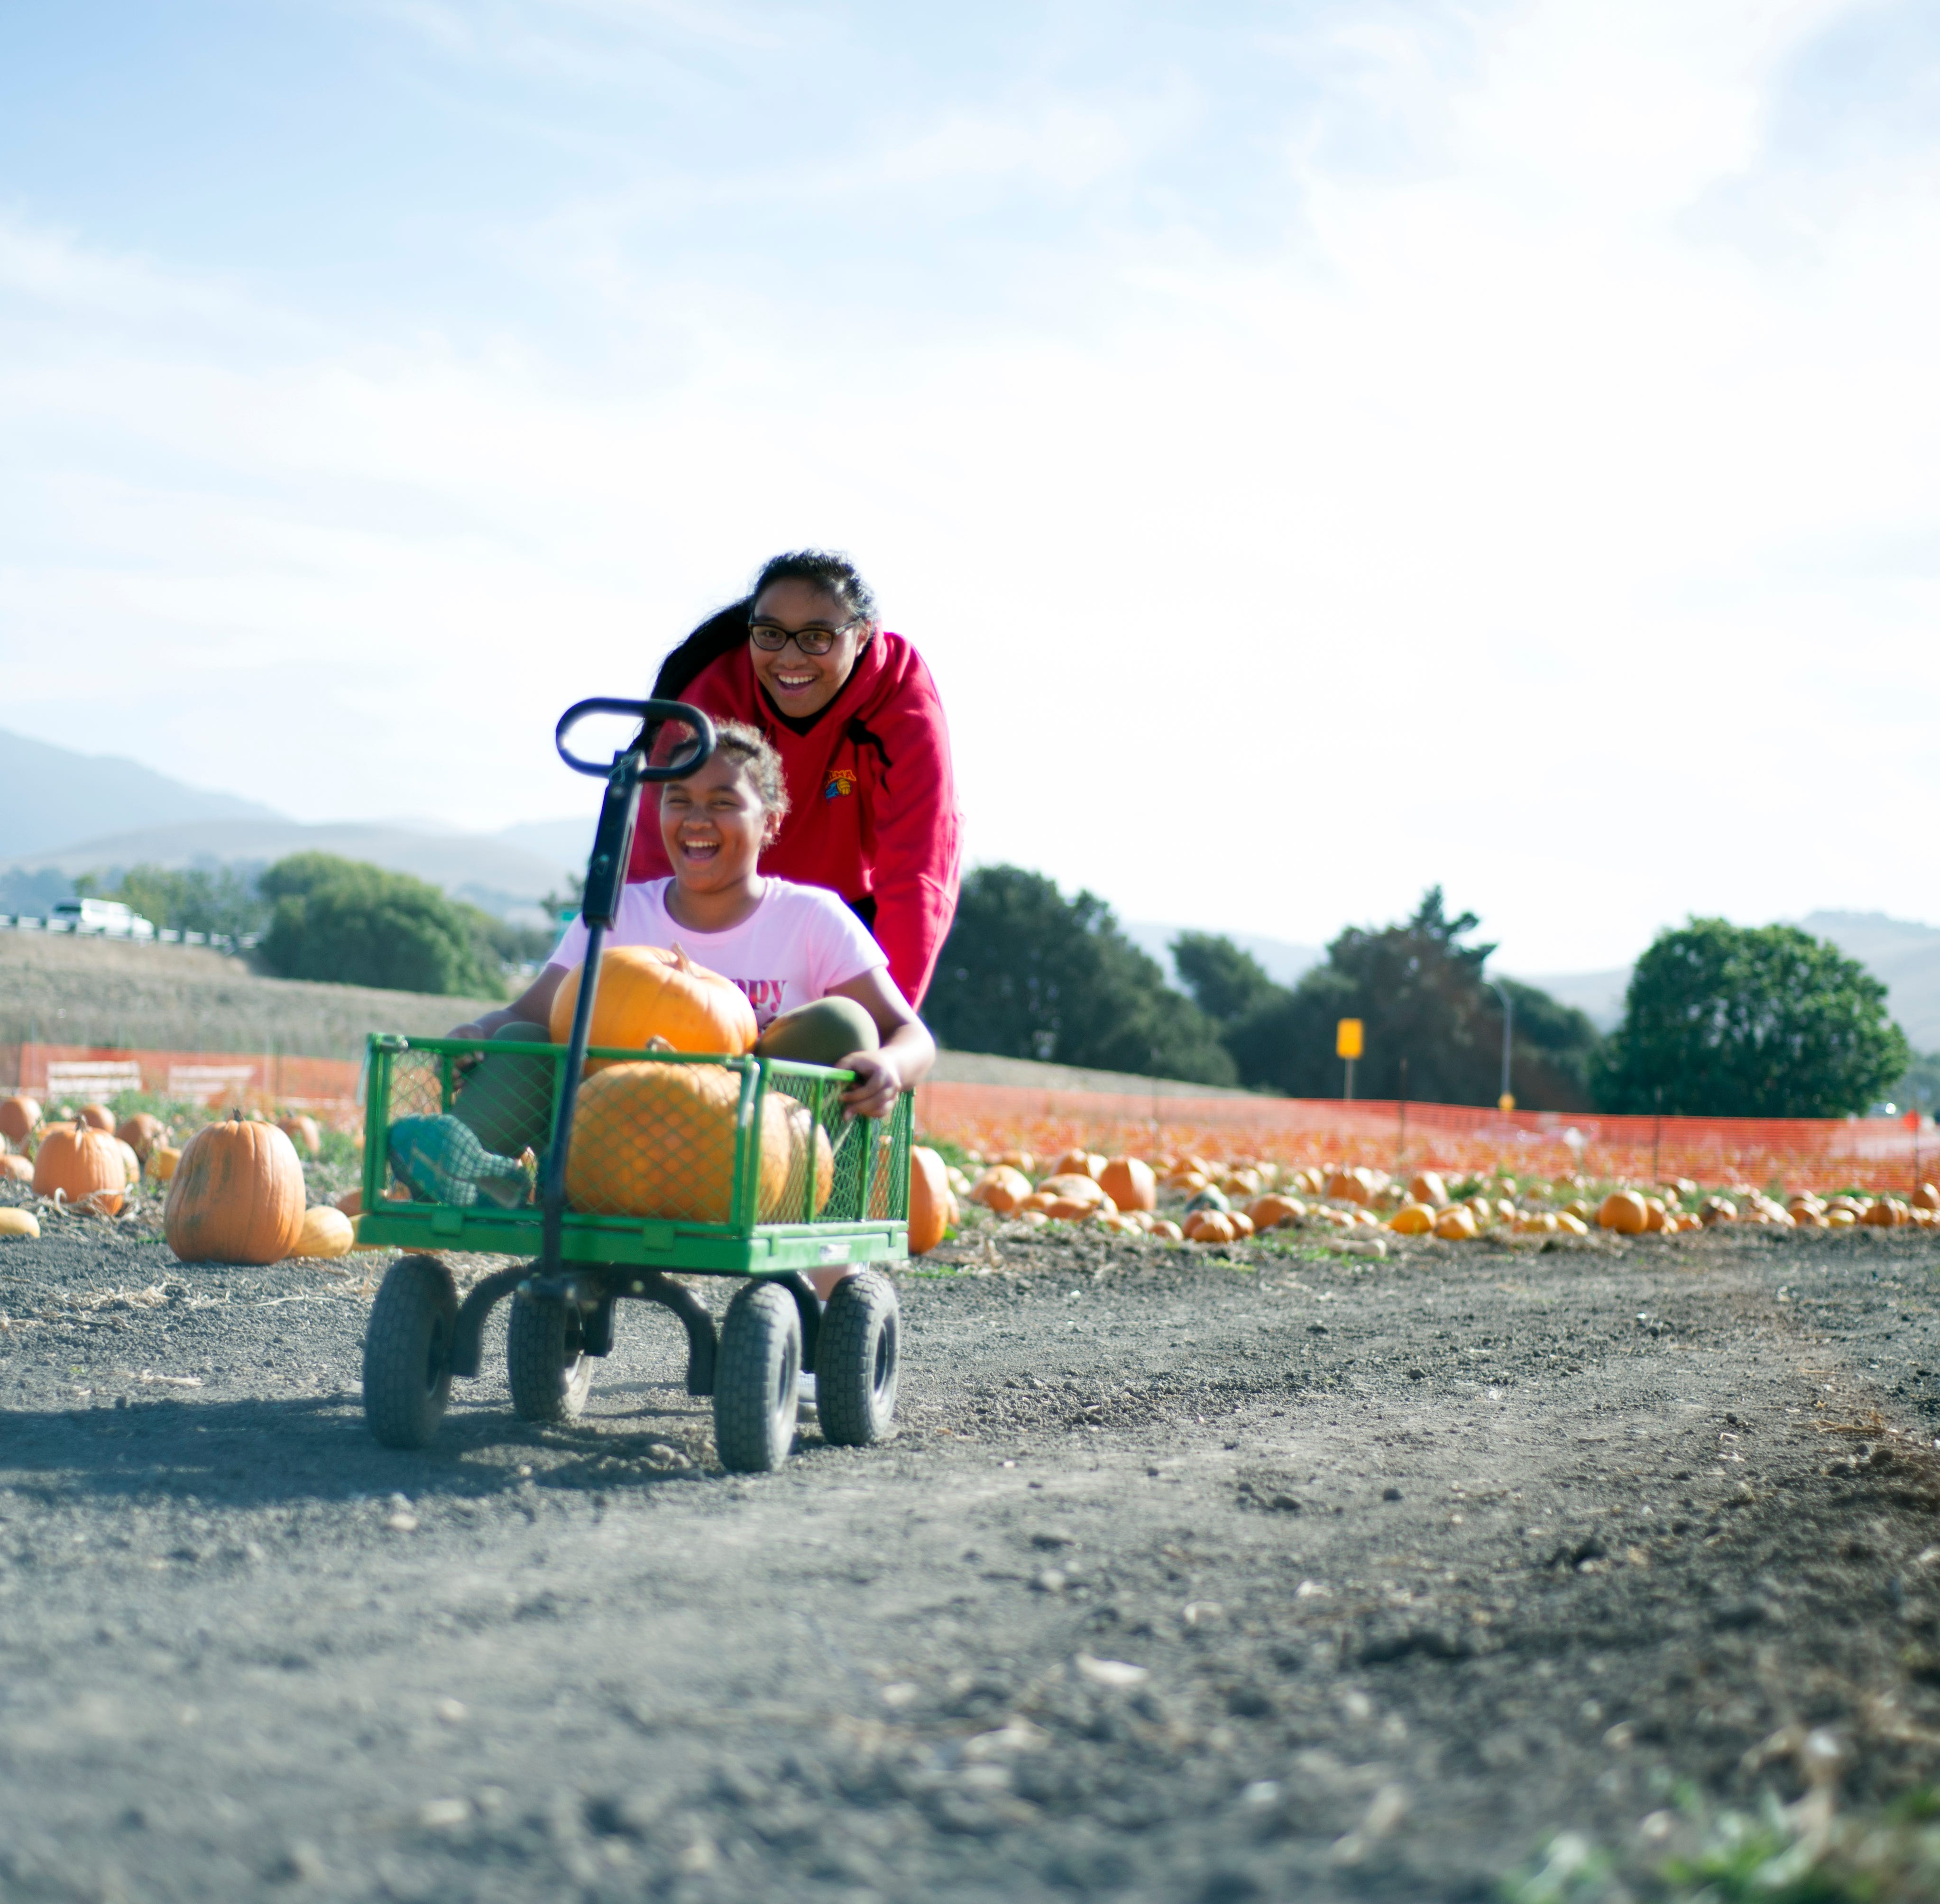 Trick or teach: The Farm brings ag to the people